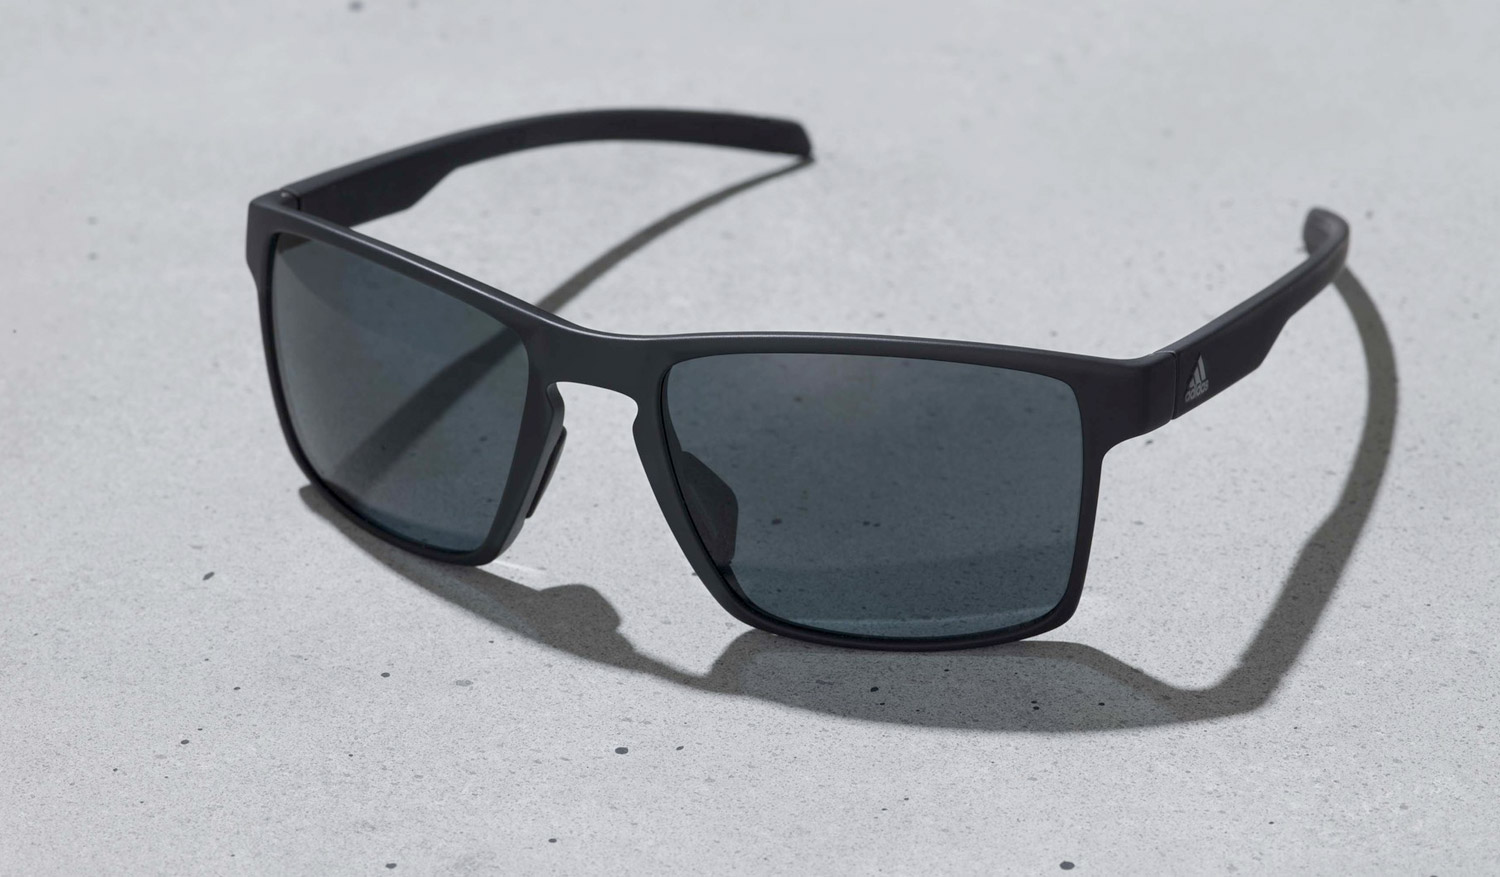 5c08b14f92 Fashion meets function in the active lifestyle series from Adidas Sport  Eyewear